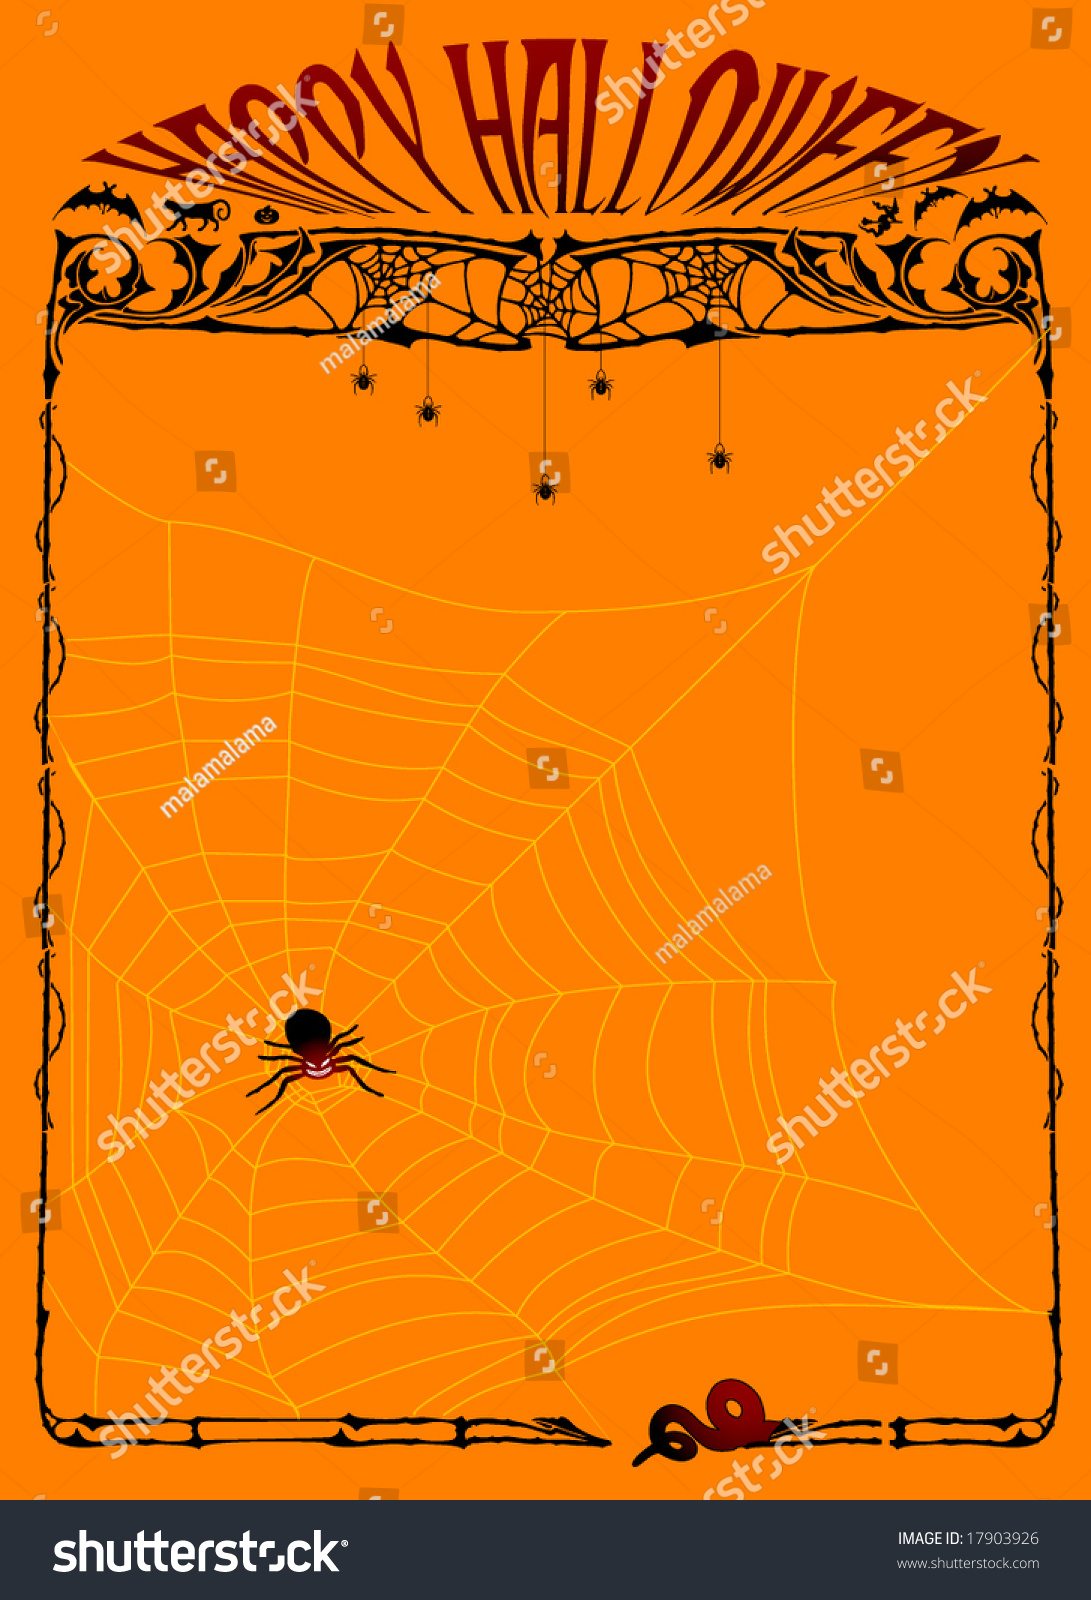 happy halloween page template for invitation book cover happy halloween page template for invitation book cover stationary spider and spiderweb theme stock vector illustration 17903926 shutterstock